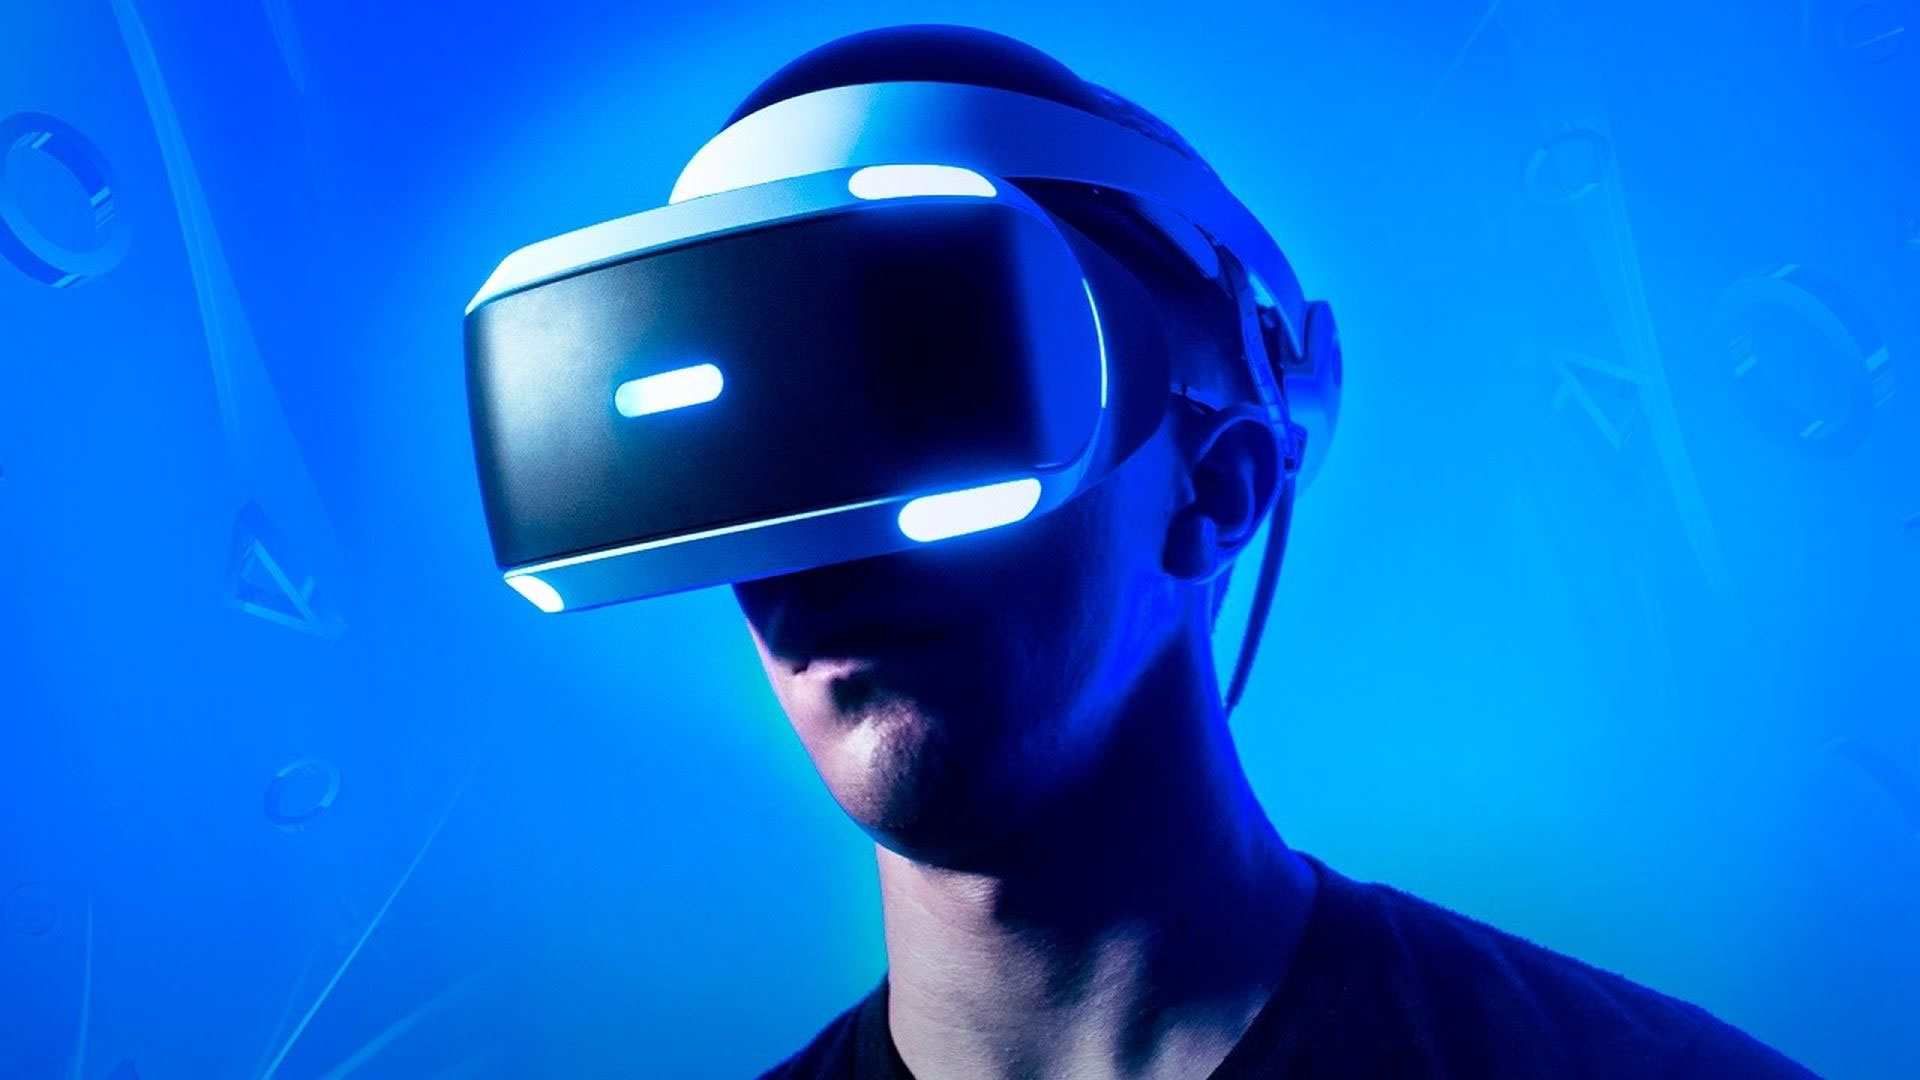 PlayStation VR: i giochi PlayStation 5 non supporteranno il visore